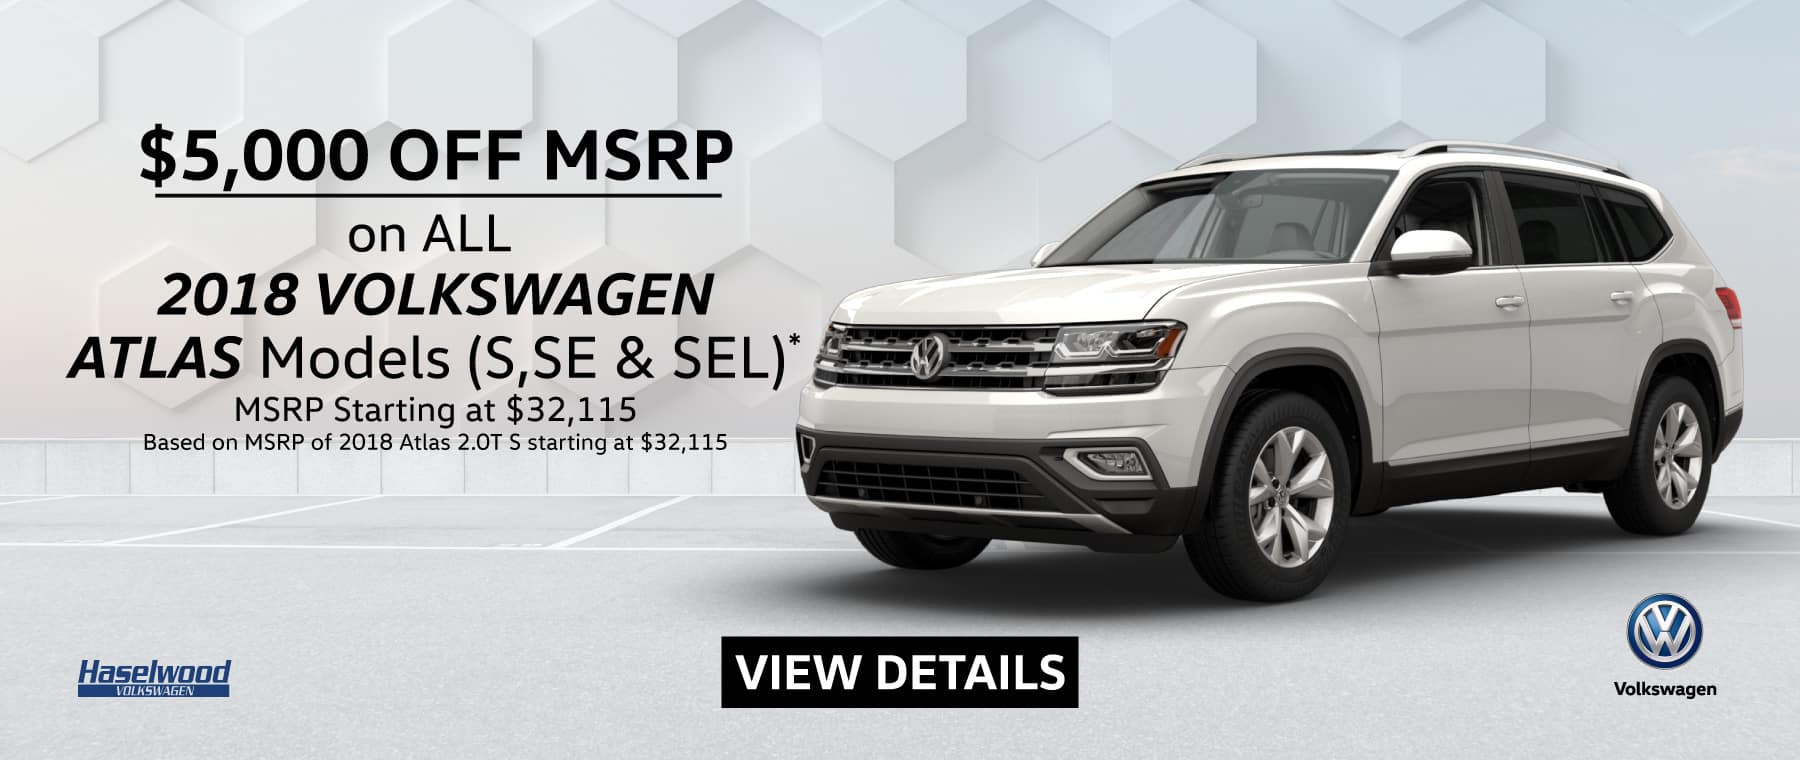 2018 ATLAS All Models (featured vehicle)  $5,000 OFF MSRP*  *Offer valid on 2018 ATLAS All Models S, SE, and SEL. Based on MSRP of 2018 Atlas 2.0T S starting at $32,115. $5,000 off of MSRP. Subject to credit approval. Down payment and monthly payment may vary. For highly qualified customers on approved top tier credit through Volkswagen Credit. Excludes taxes, tags, registration and title, insurance and dealer charges. A negotiable dealer documentary service fee of up to $150 may be added to the sale price or capitalized cost. See dealer for complete details and restrictions. 6 years/72,000 miles (whichever occurs first). New Vehicle Limited Warranty on MY2018 and newer VW vehicles, excluding e-Golf. See owner's literature or dealer for warranty exclusions and limitations. Exp. 1/31/2019.